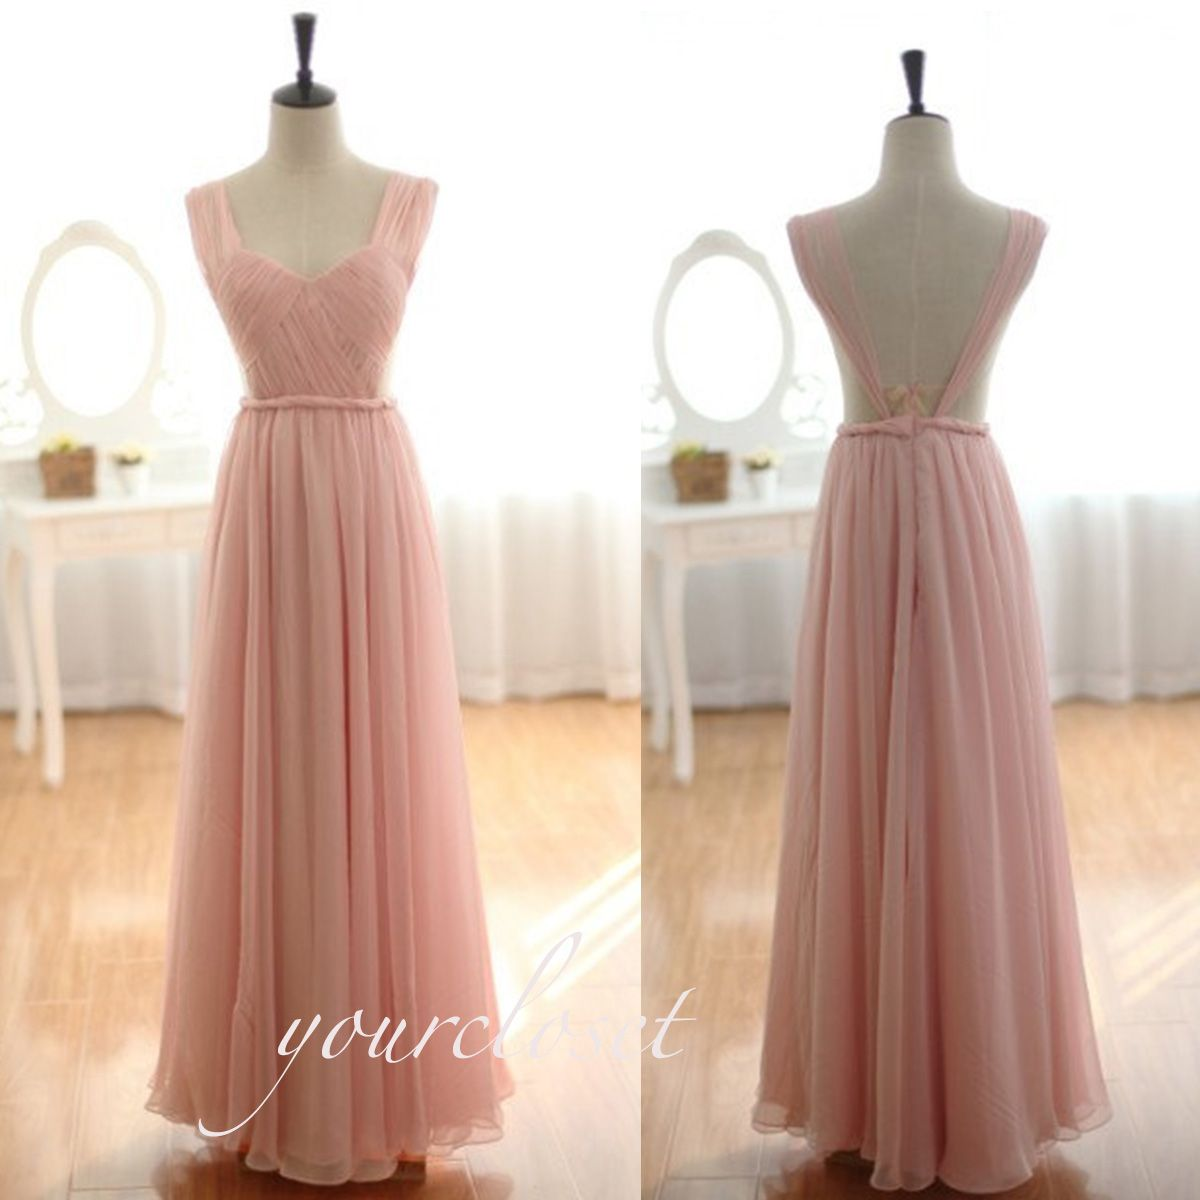 Girlfriend prom dress elegant pink chiffon floorlength halter